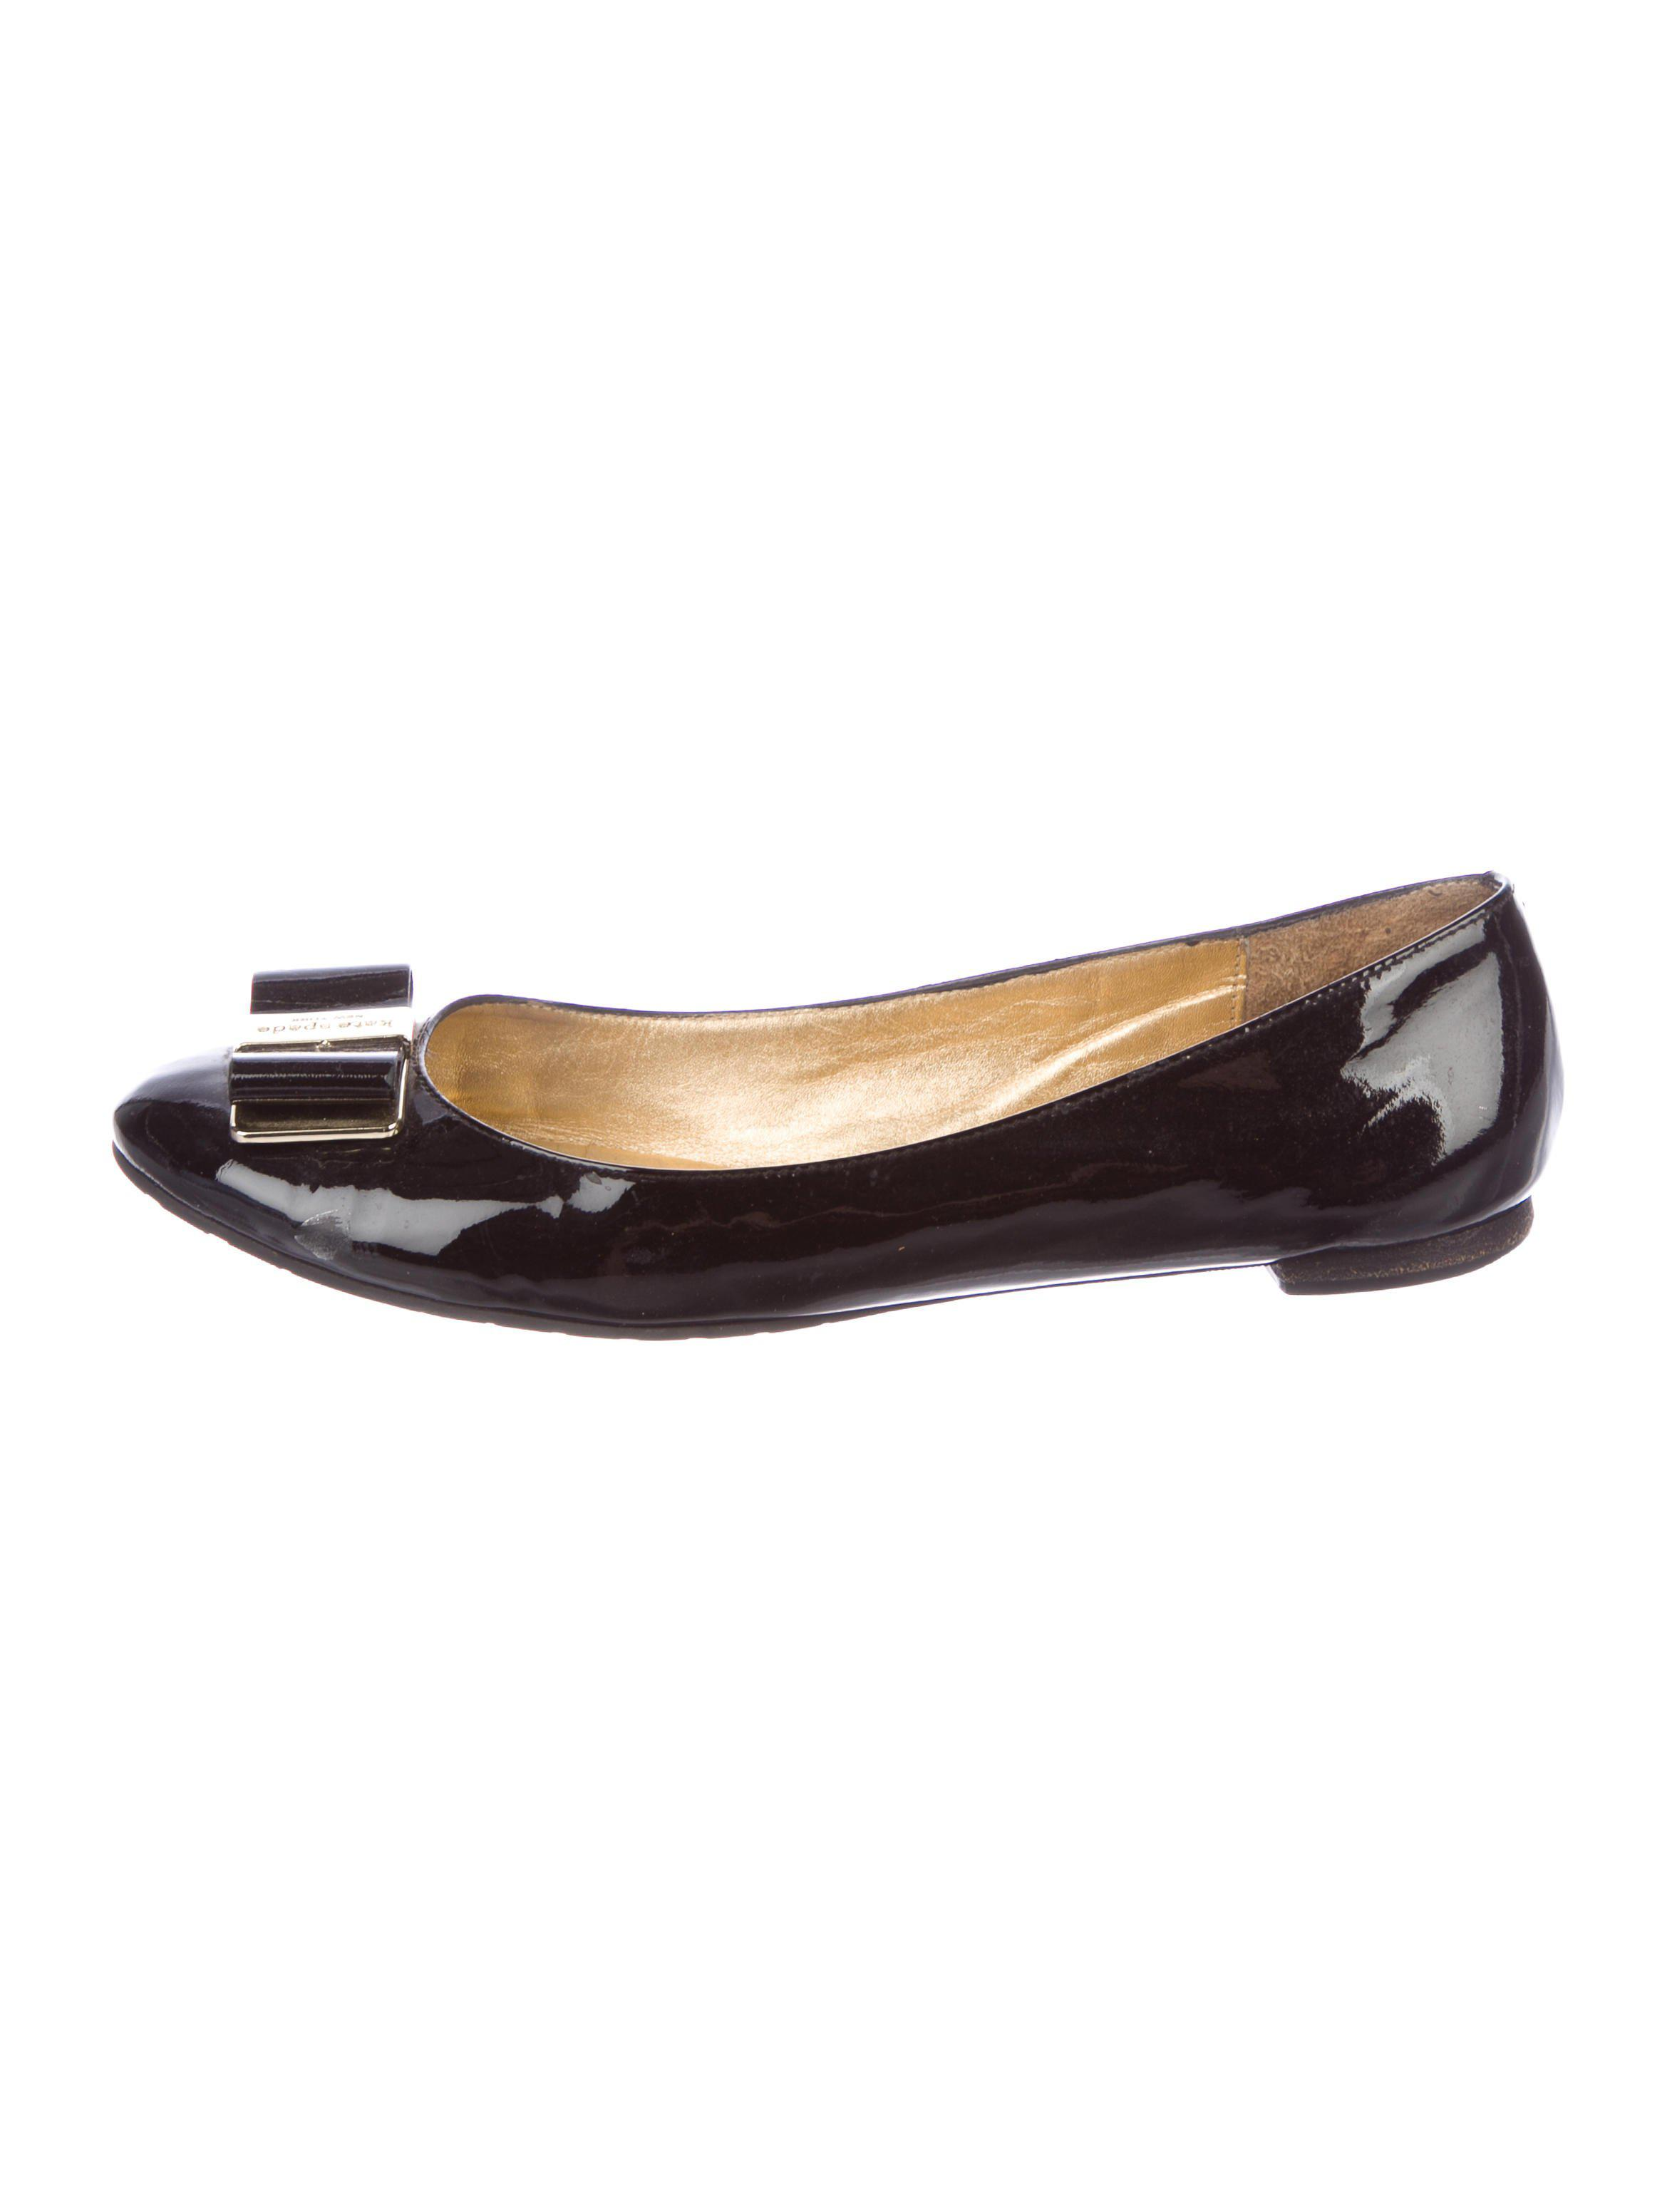 c9d9275bce4a Lyst - Kate Spade Patent Leather Bow Flats Black in Metallic